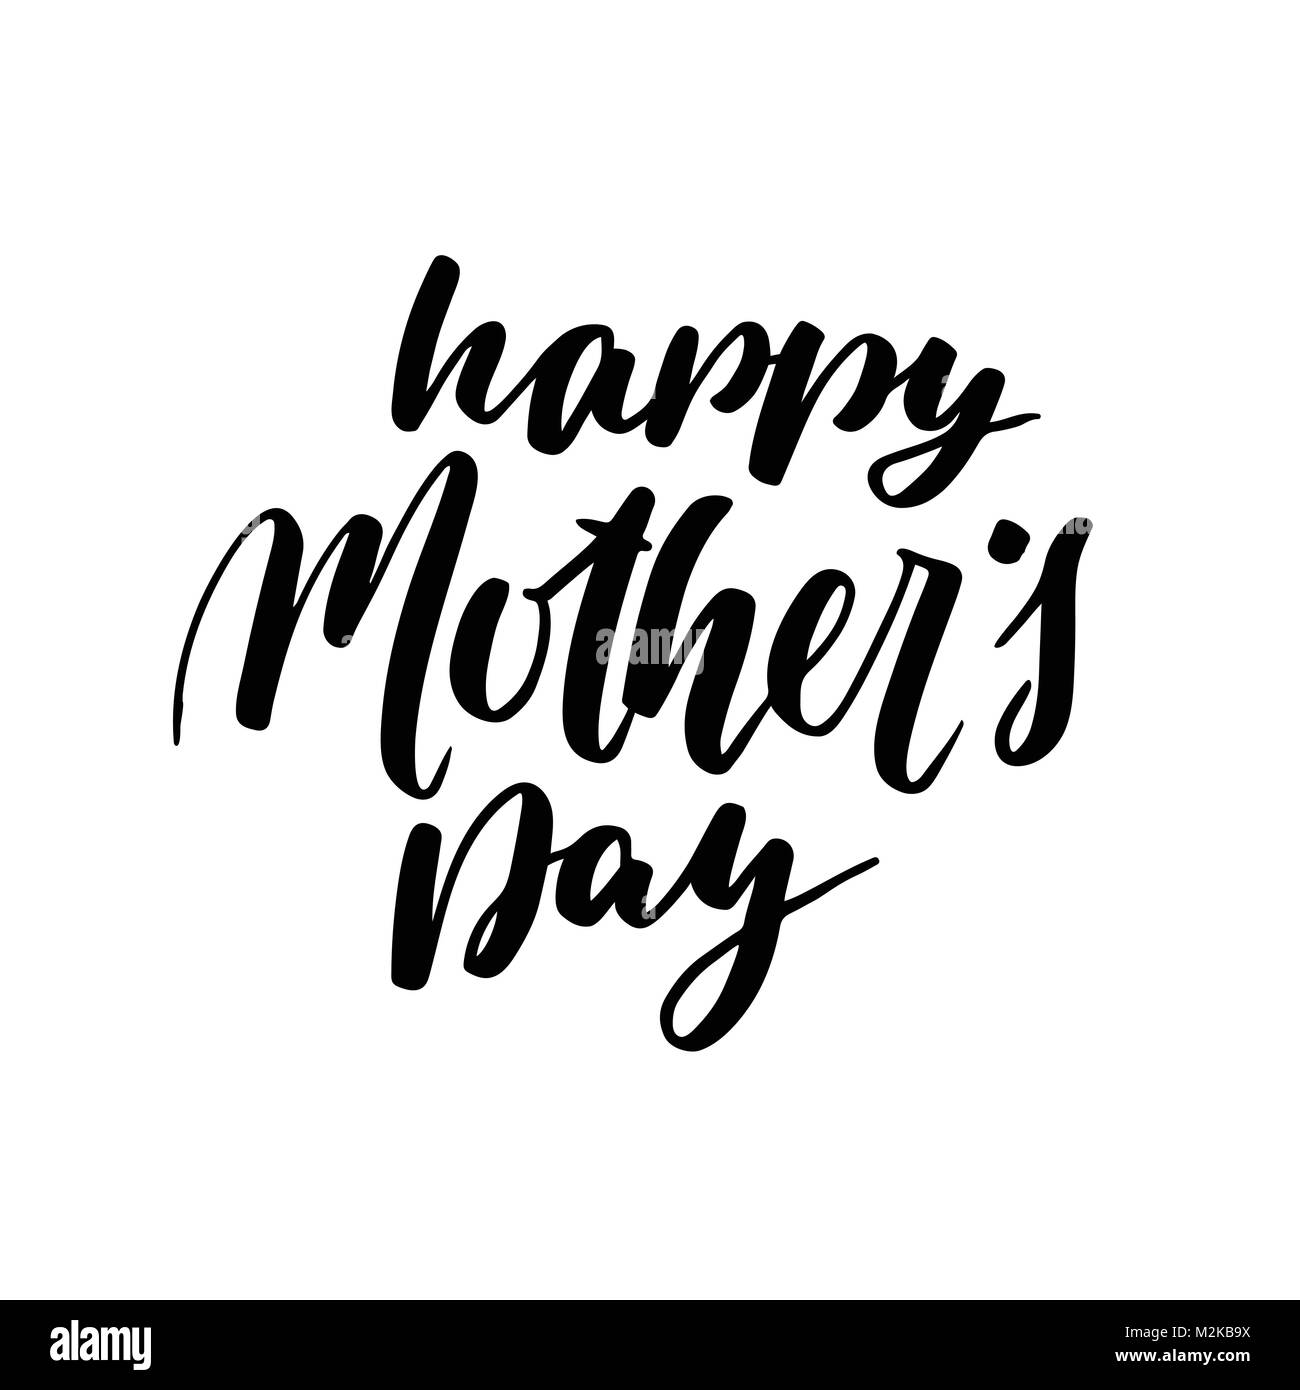 Happy mothers day greeting card black calligraphy inscription happy mothers day greeting card black calligraphy inscription modern hand lettering design postcard brush handwritten text isolated on white backg m4hsunfo